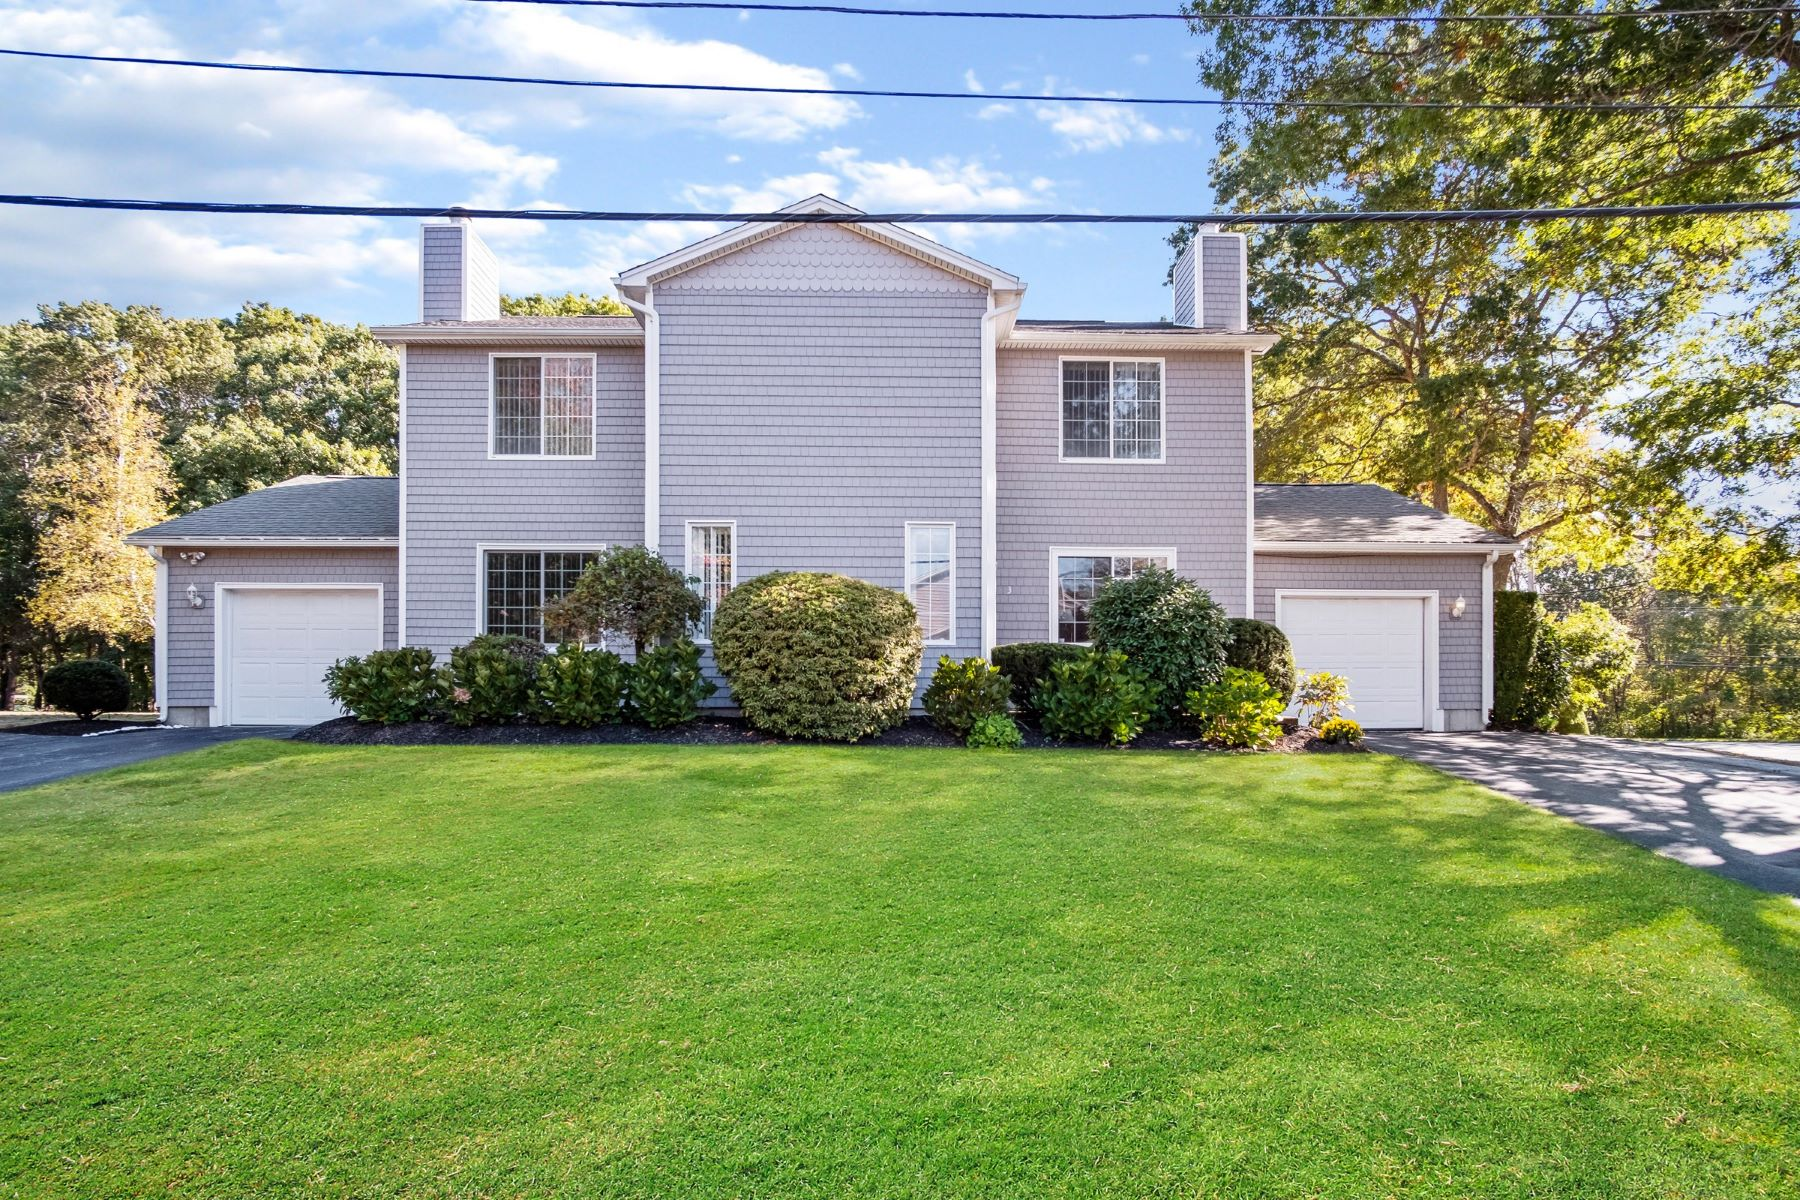 condominiums for Sale at 3 Parsley Lane, Narragansett, RI Narragansett, Rhode Island 02882 United States